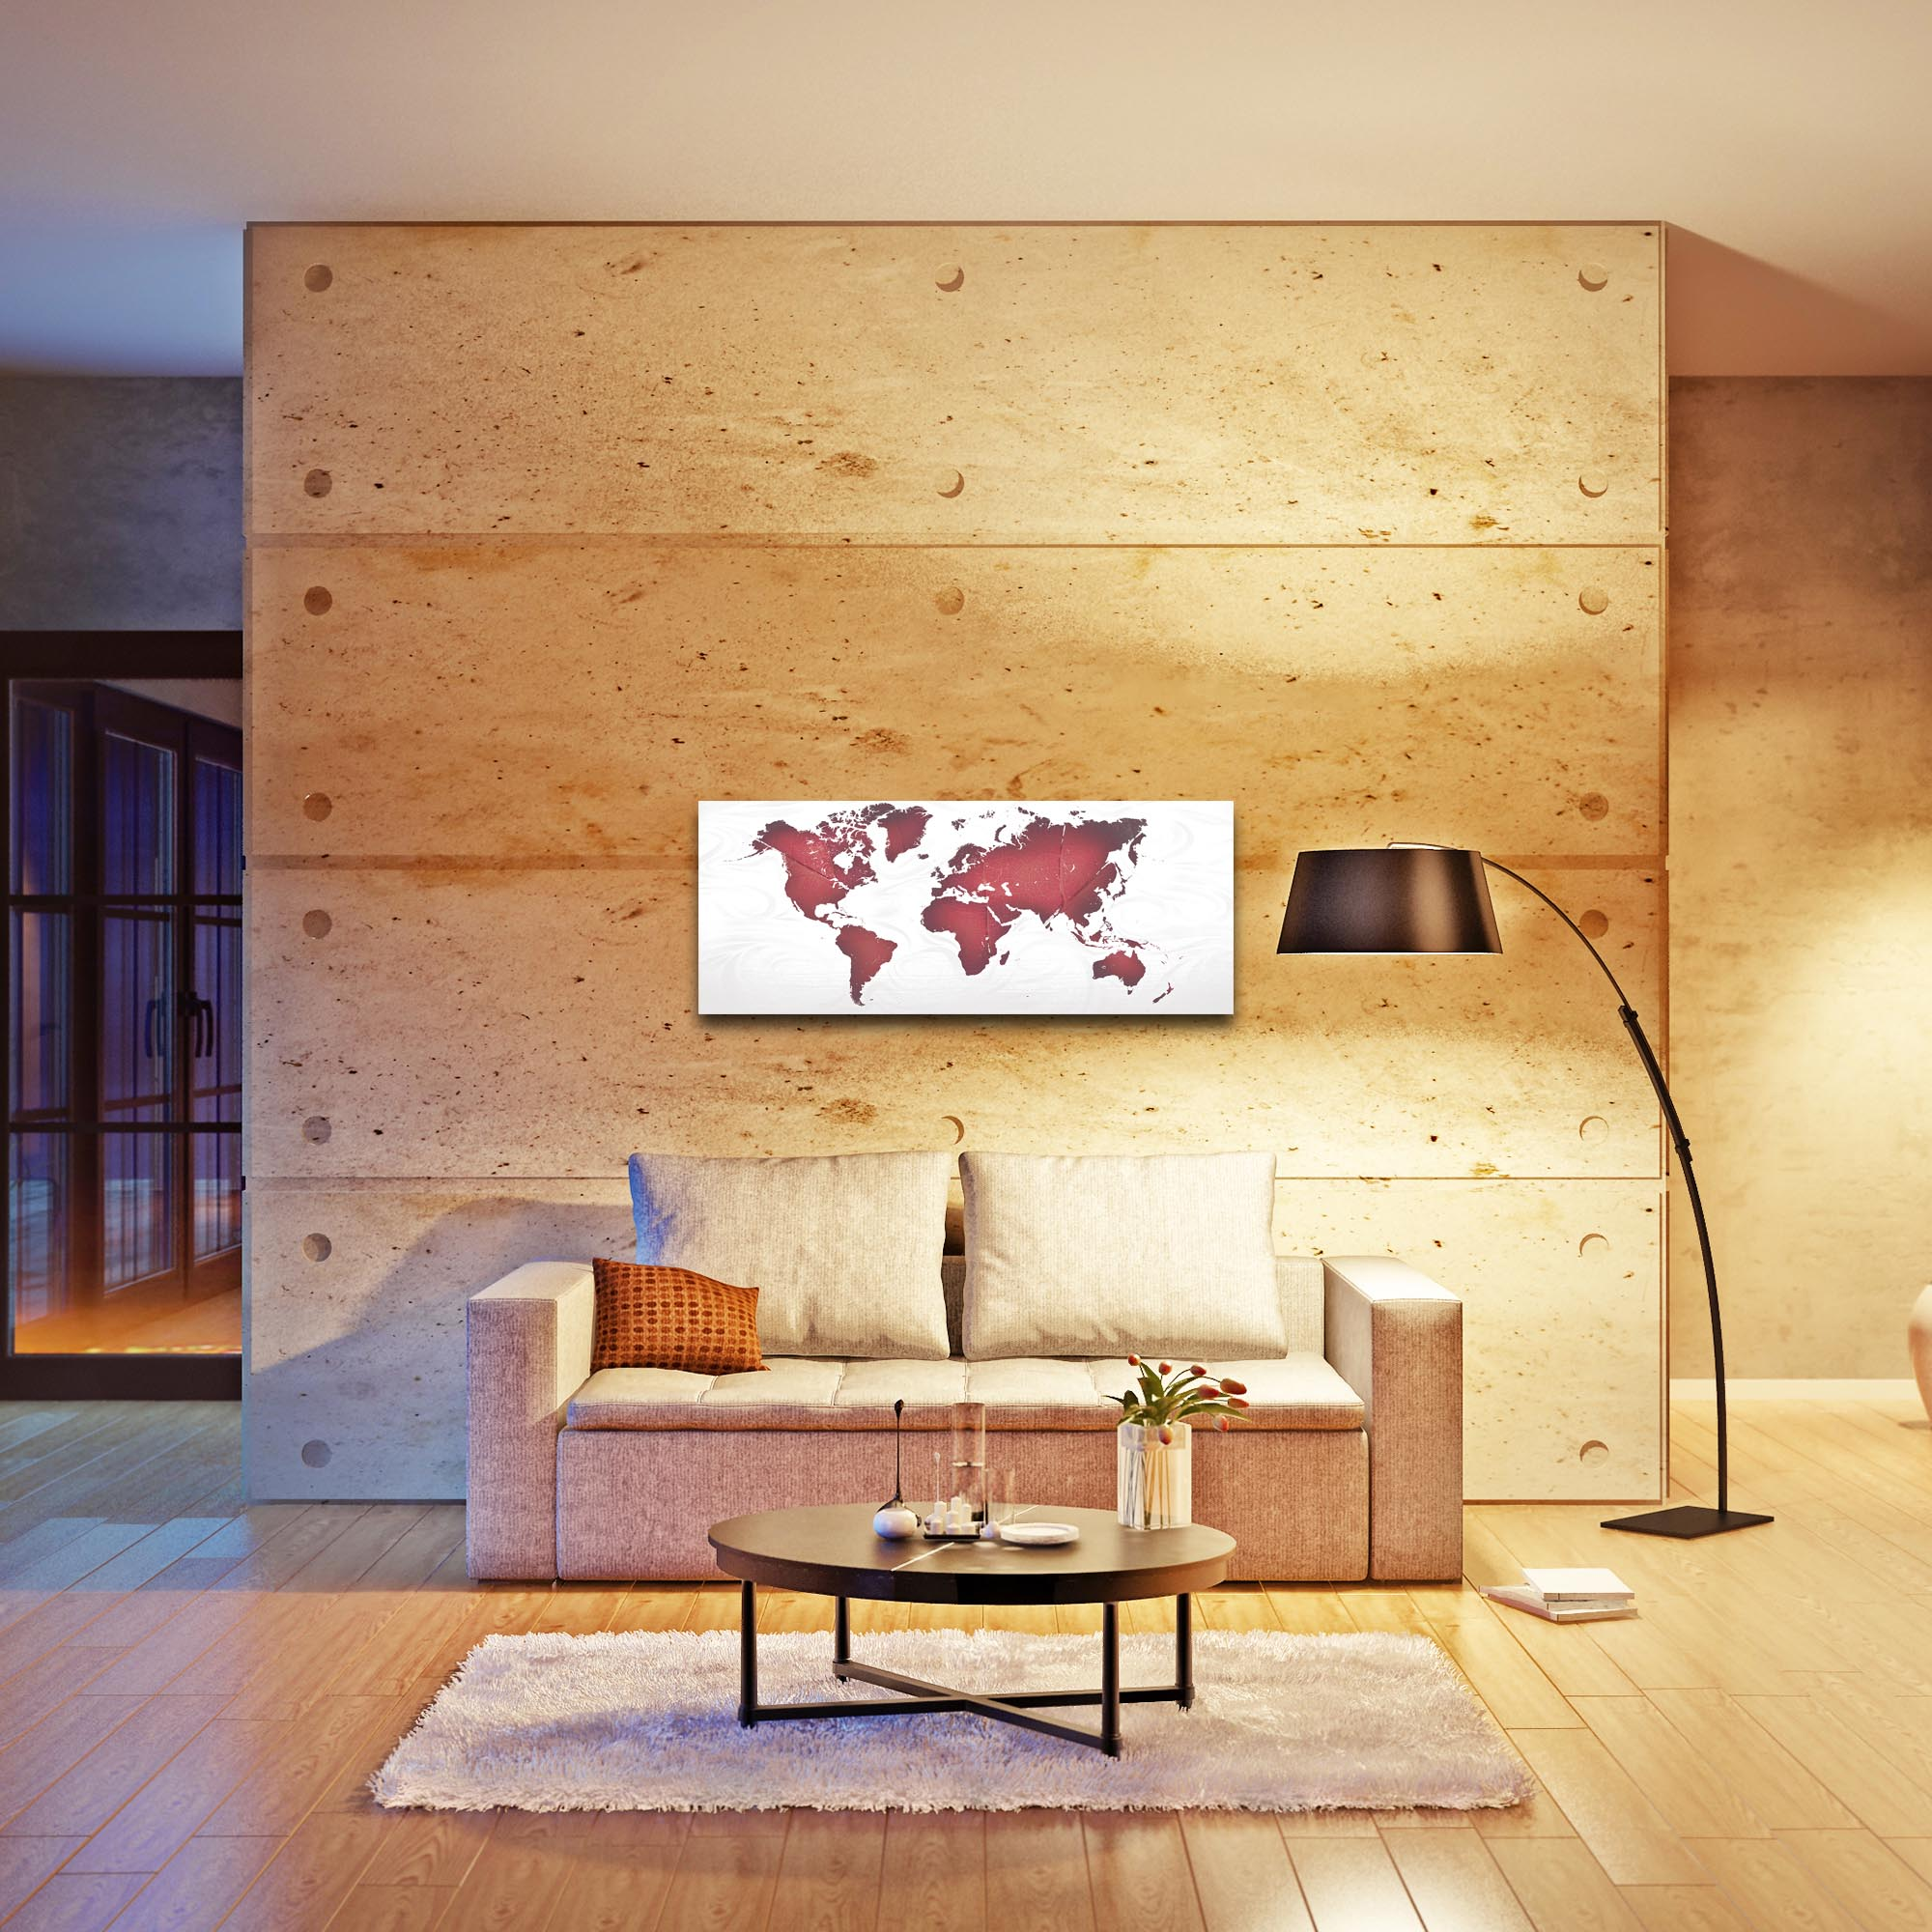 Abstract World Map 'Red White Land and Sea' - Urban Wall Art on Metal or Acrylic - Lifestyle View